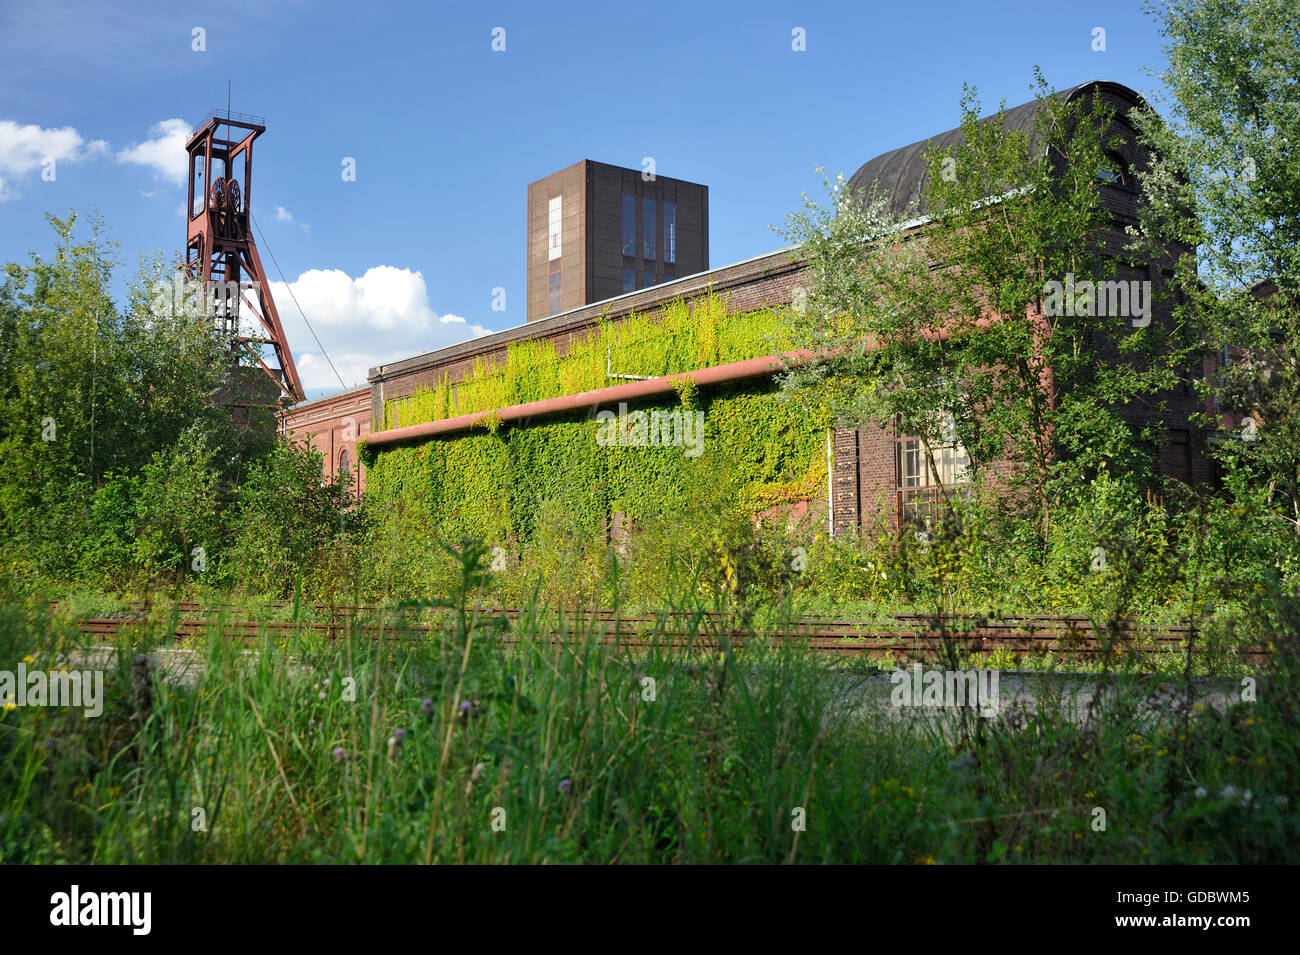 Pact building, Coal mine Zollverein, industrial memorial, Essen, Ruhr area, North Rhine-Westphalia, Germany / Industrial - Stock Image